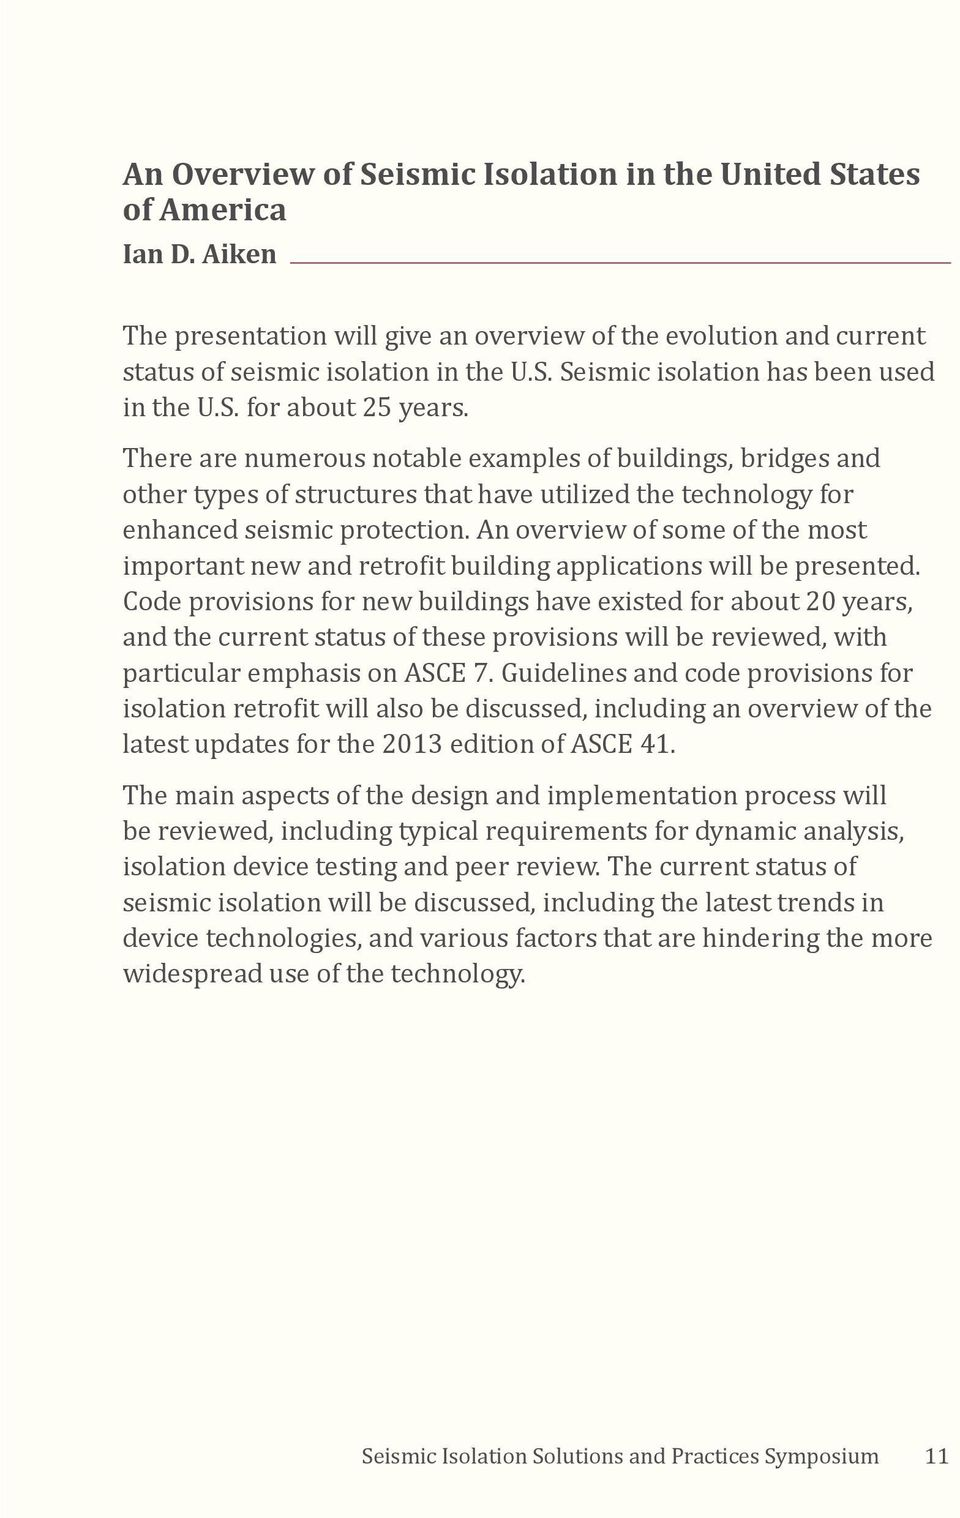 An overview of some of the most important new and retrofit building applications will be presented.